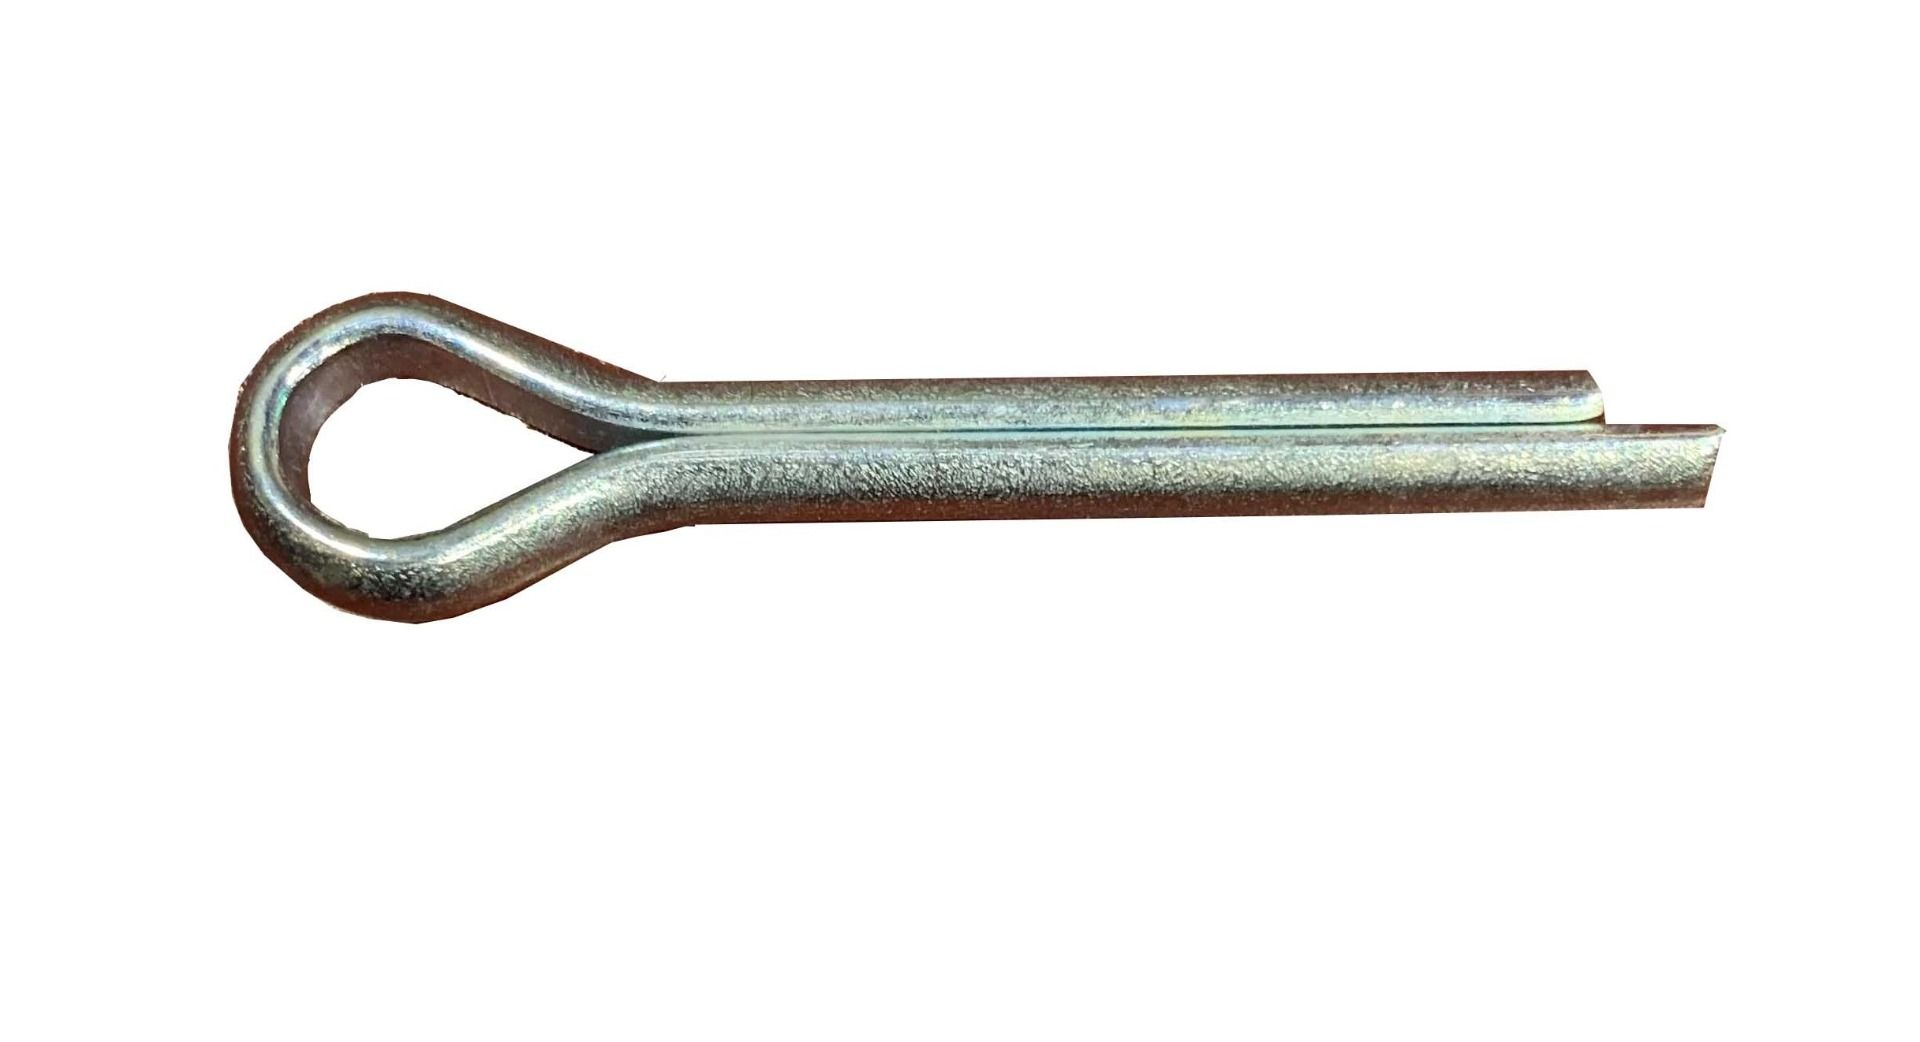 SnowEx 1/4x1-1/2 Cotter Pin